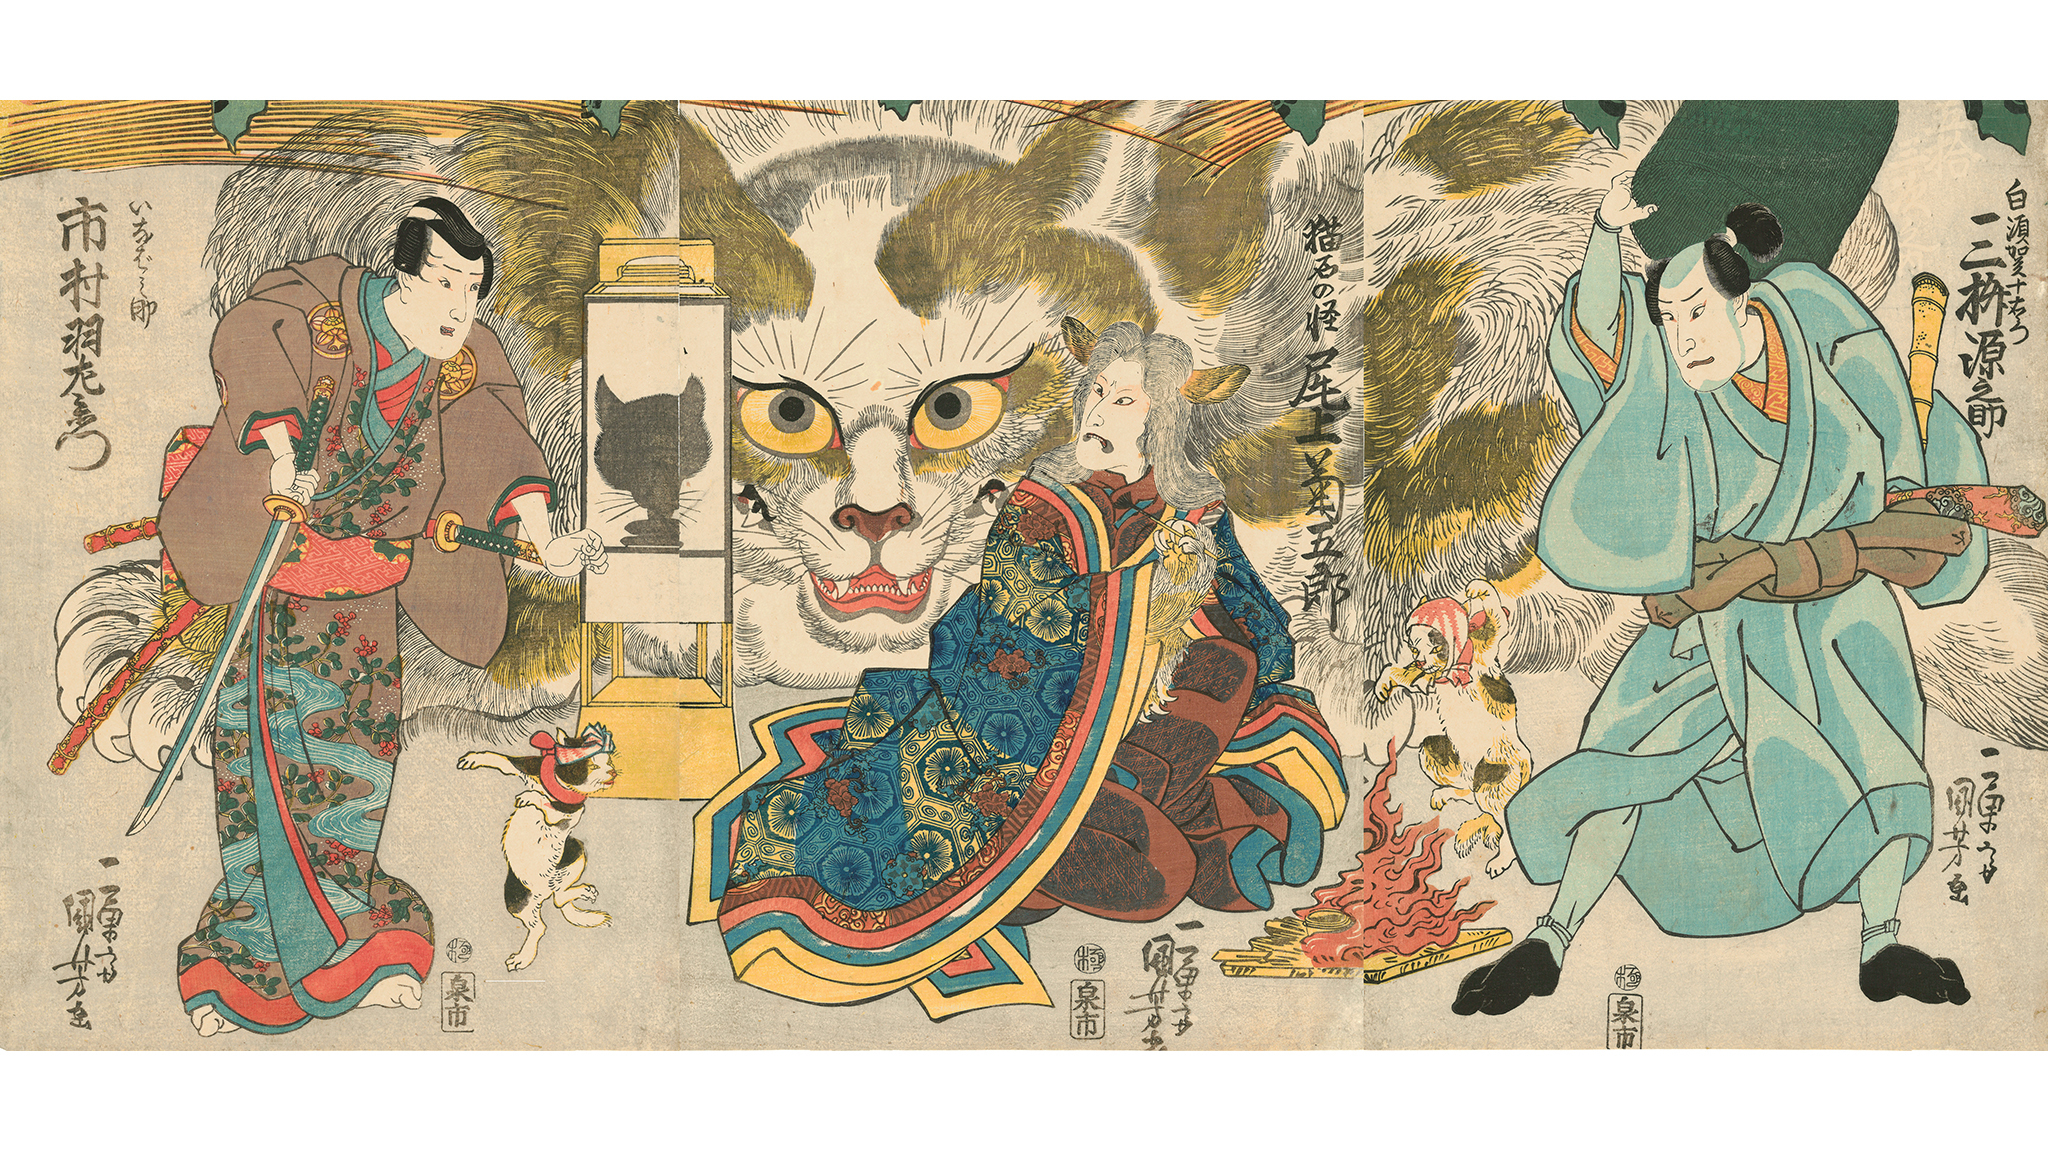 Utagawa Kuniyoshi (1797–1861), From the Fifty-three Stations of the Tōkaidō Road: Scene at Okazaki: Onoe Kikugorō III as the Neko-ishi no Kai, the Spirit of the Cat Stone, Mimasu Gennosuke I as Shirasuga Jūemon, and Ichimura Uzaemon XII as Inabanosuke, 18